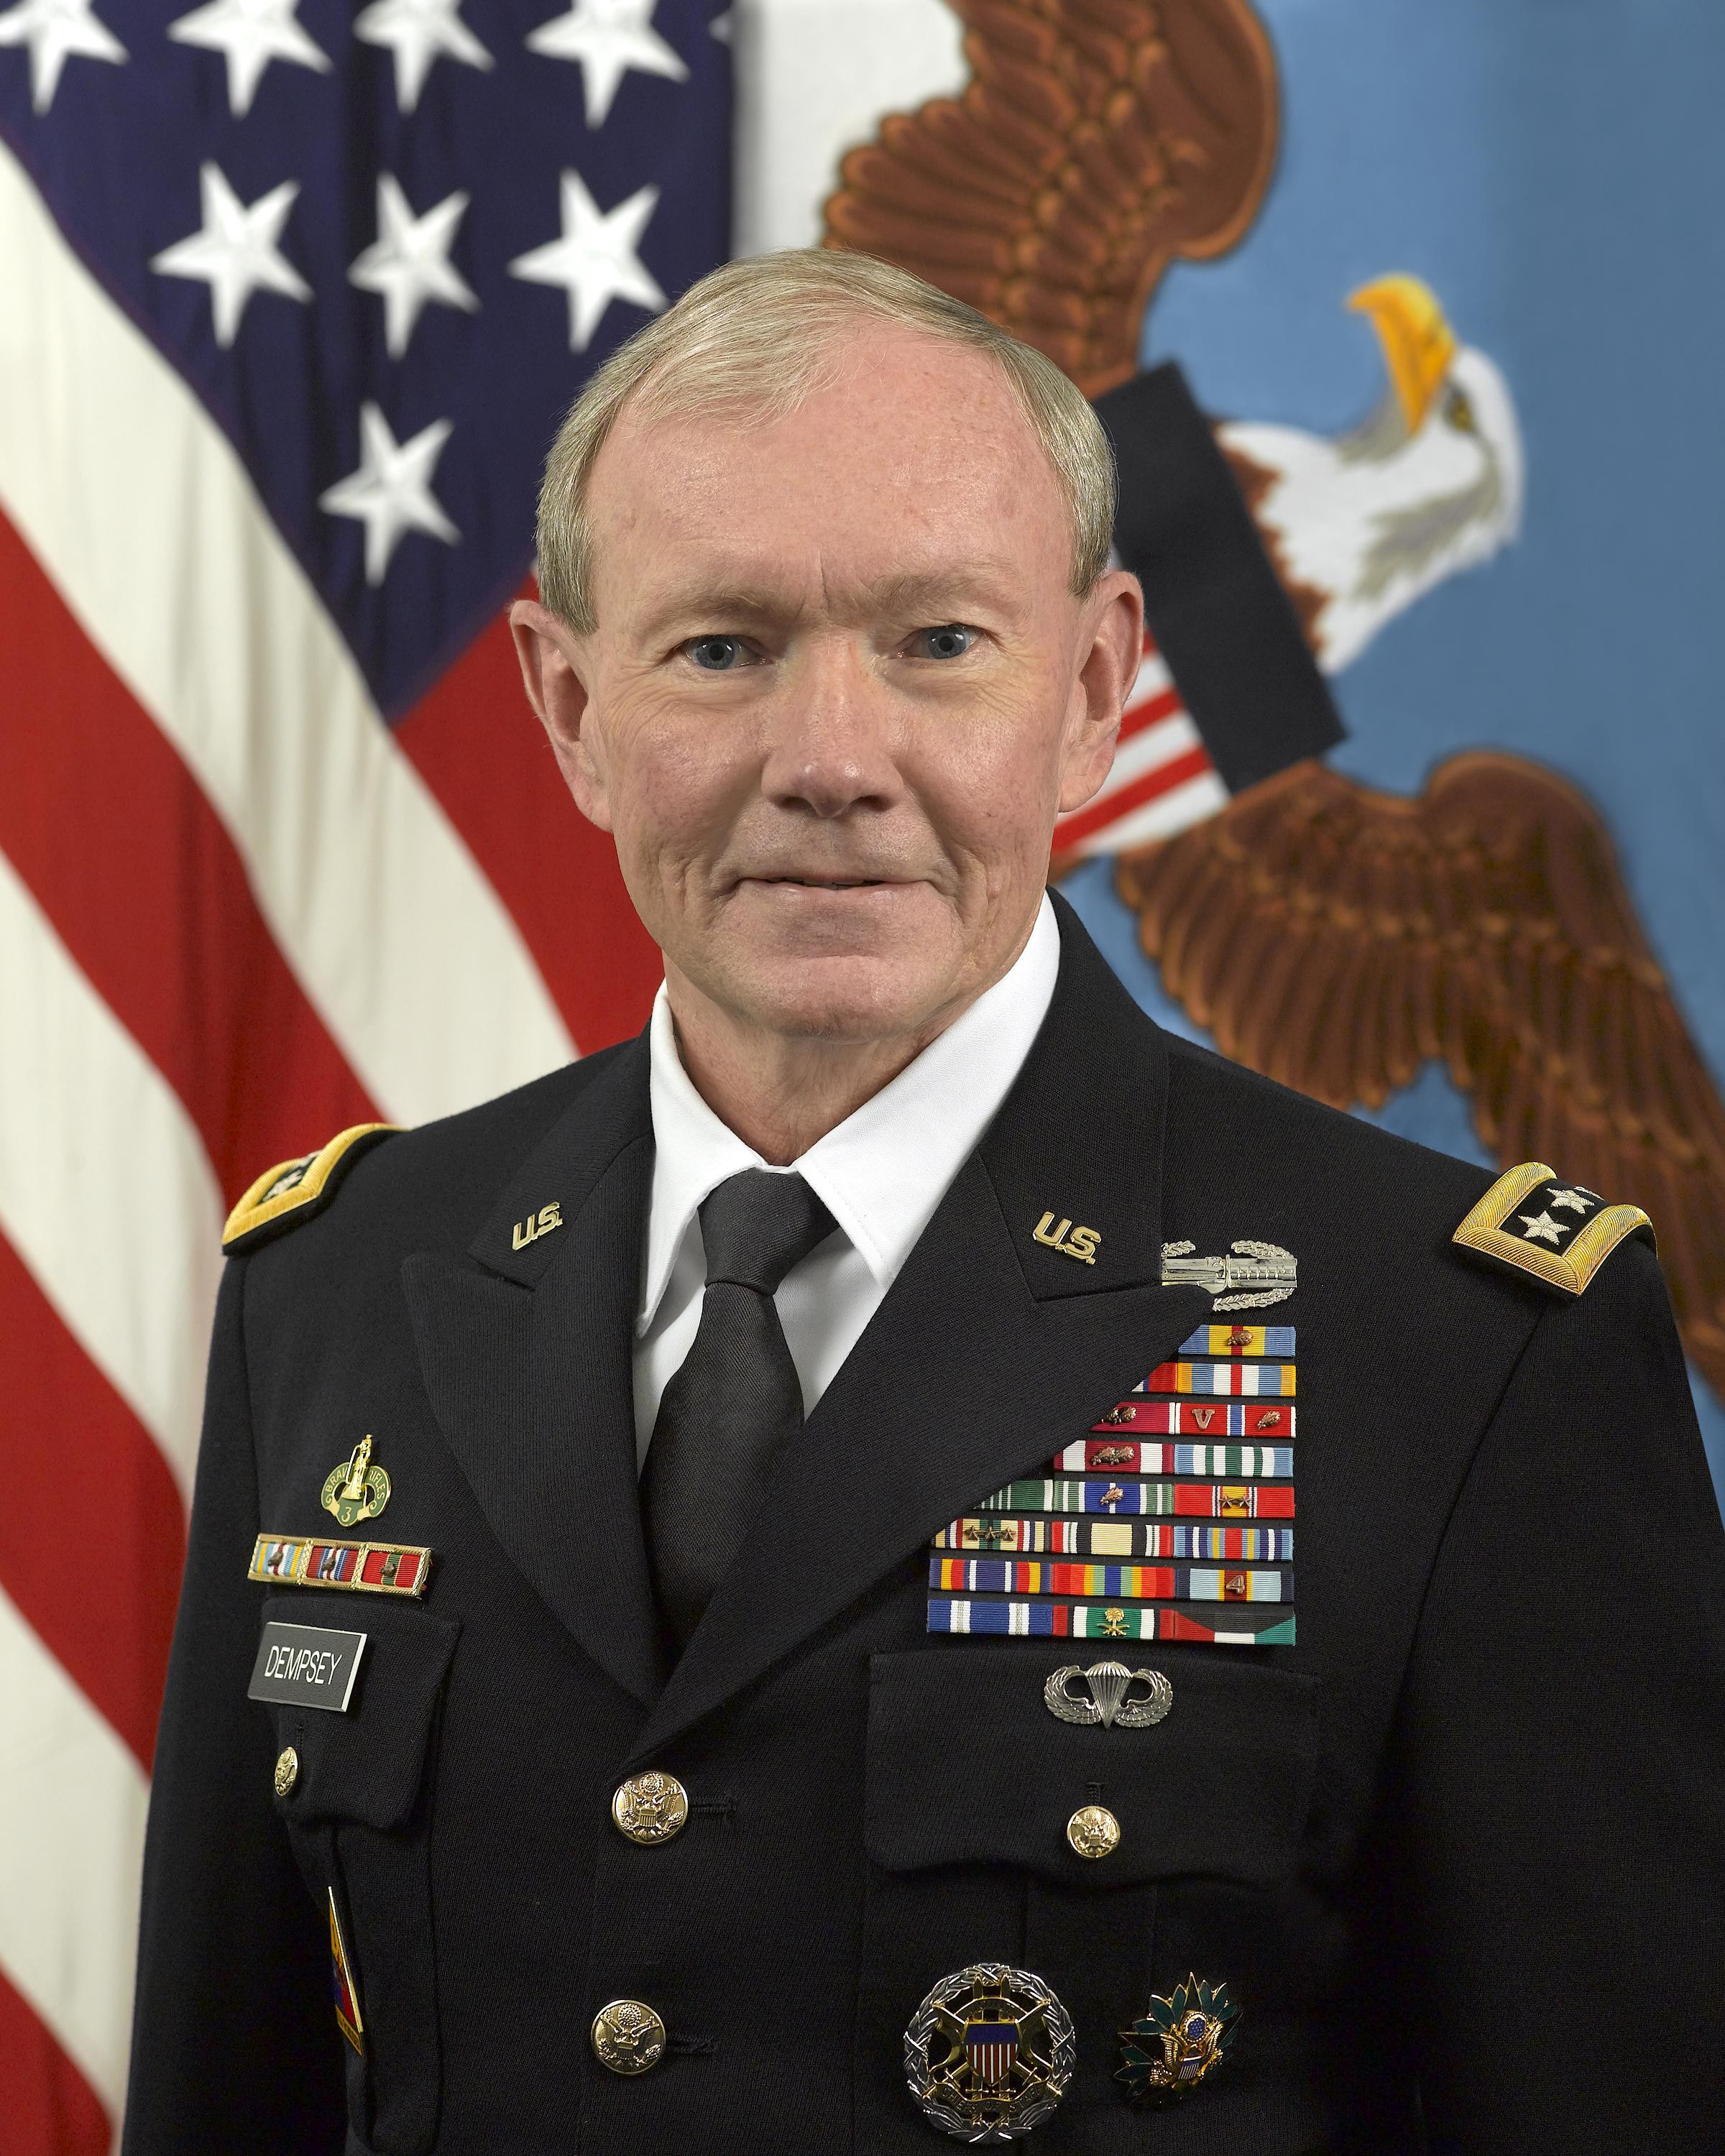 Air Force Academy Dean Of Faculty Announces Retirement: Joint Chiefs Of Staff > About > The Joint Staff > Chairman